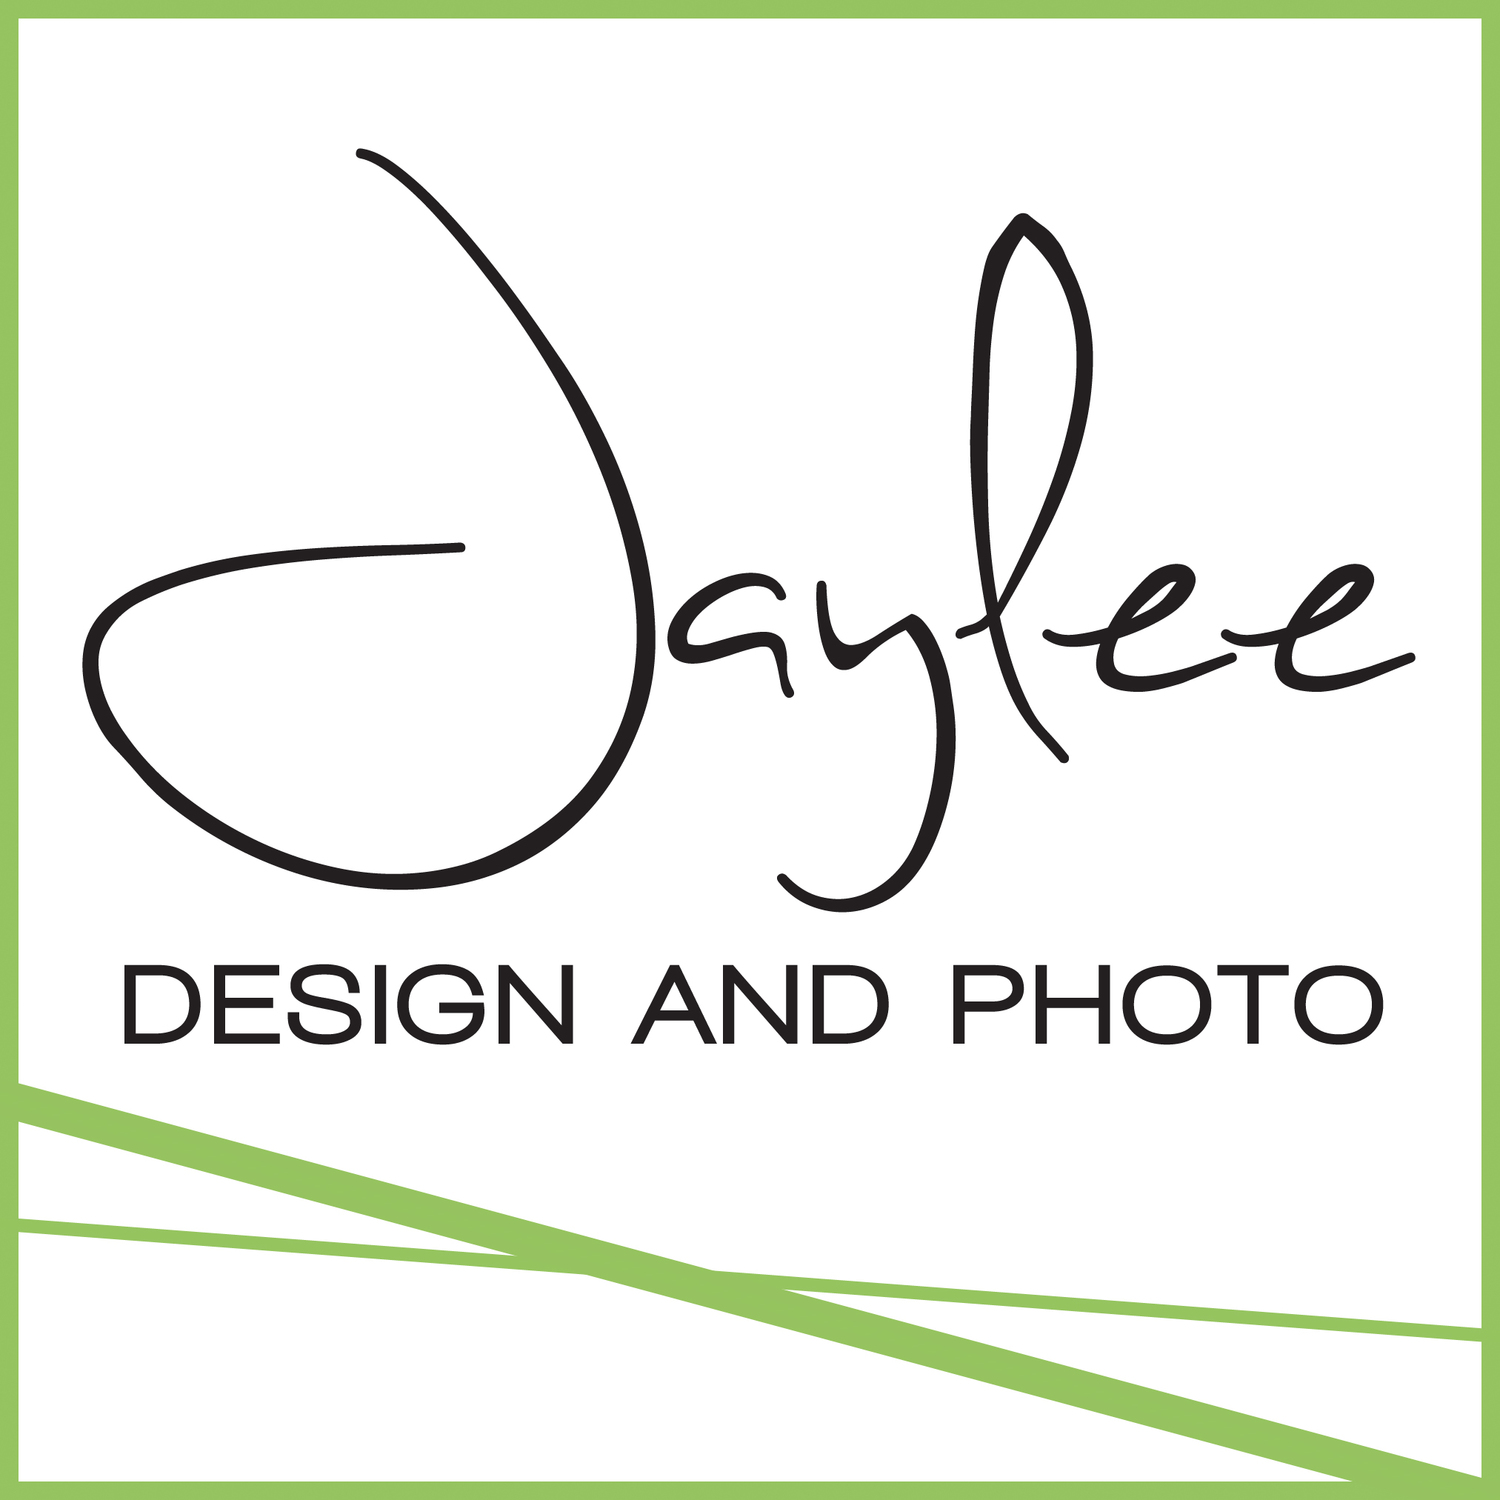 Jaylee Design and Photo